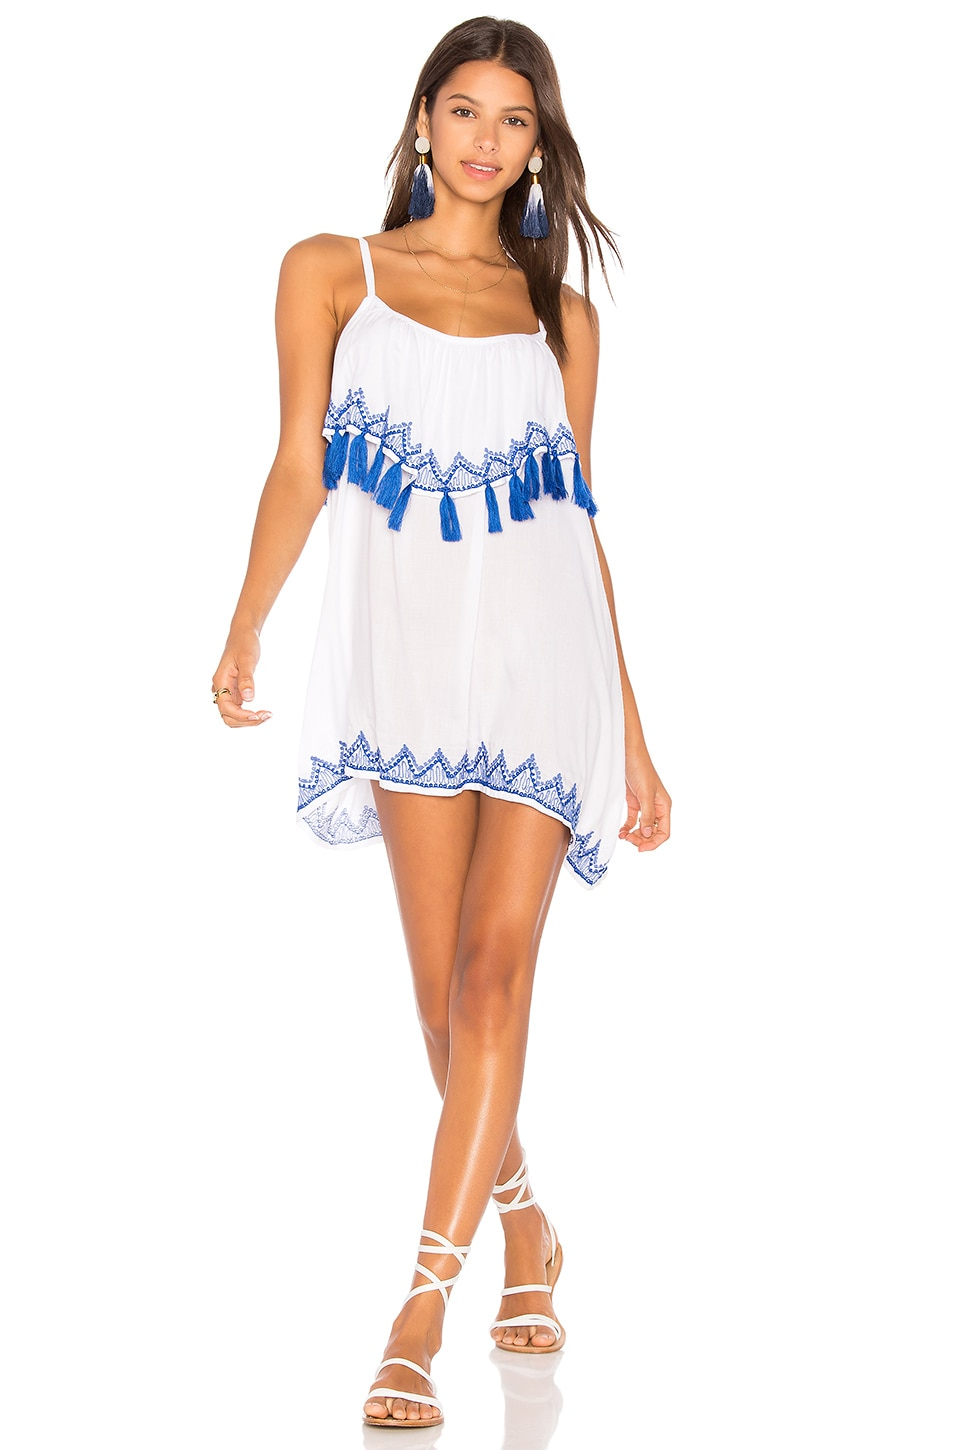 Tiare Hawaii Holter Mini Dress in White & Cobalt